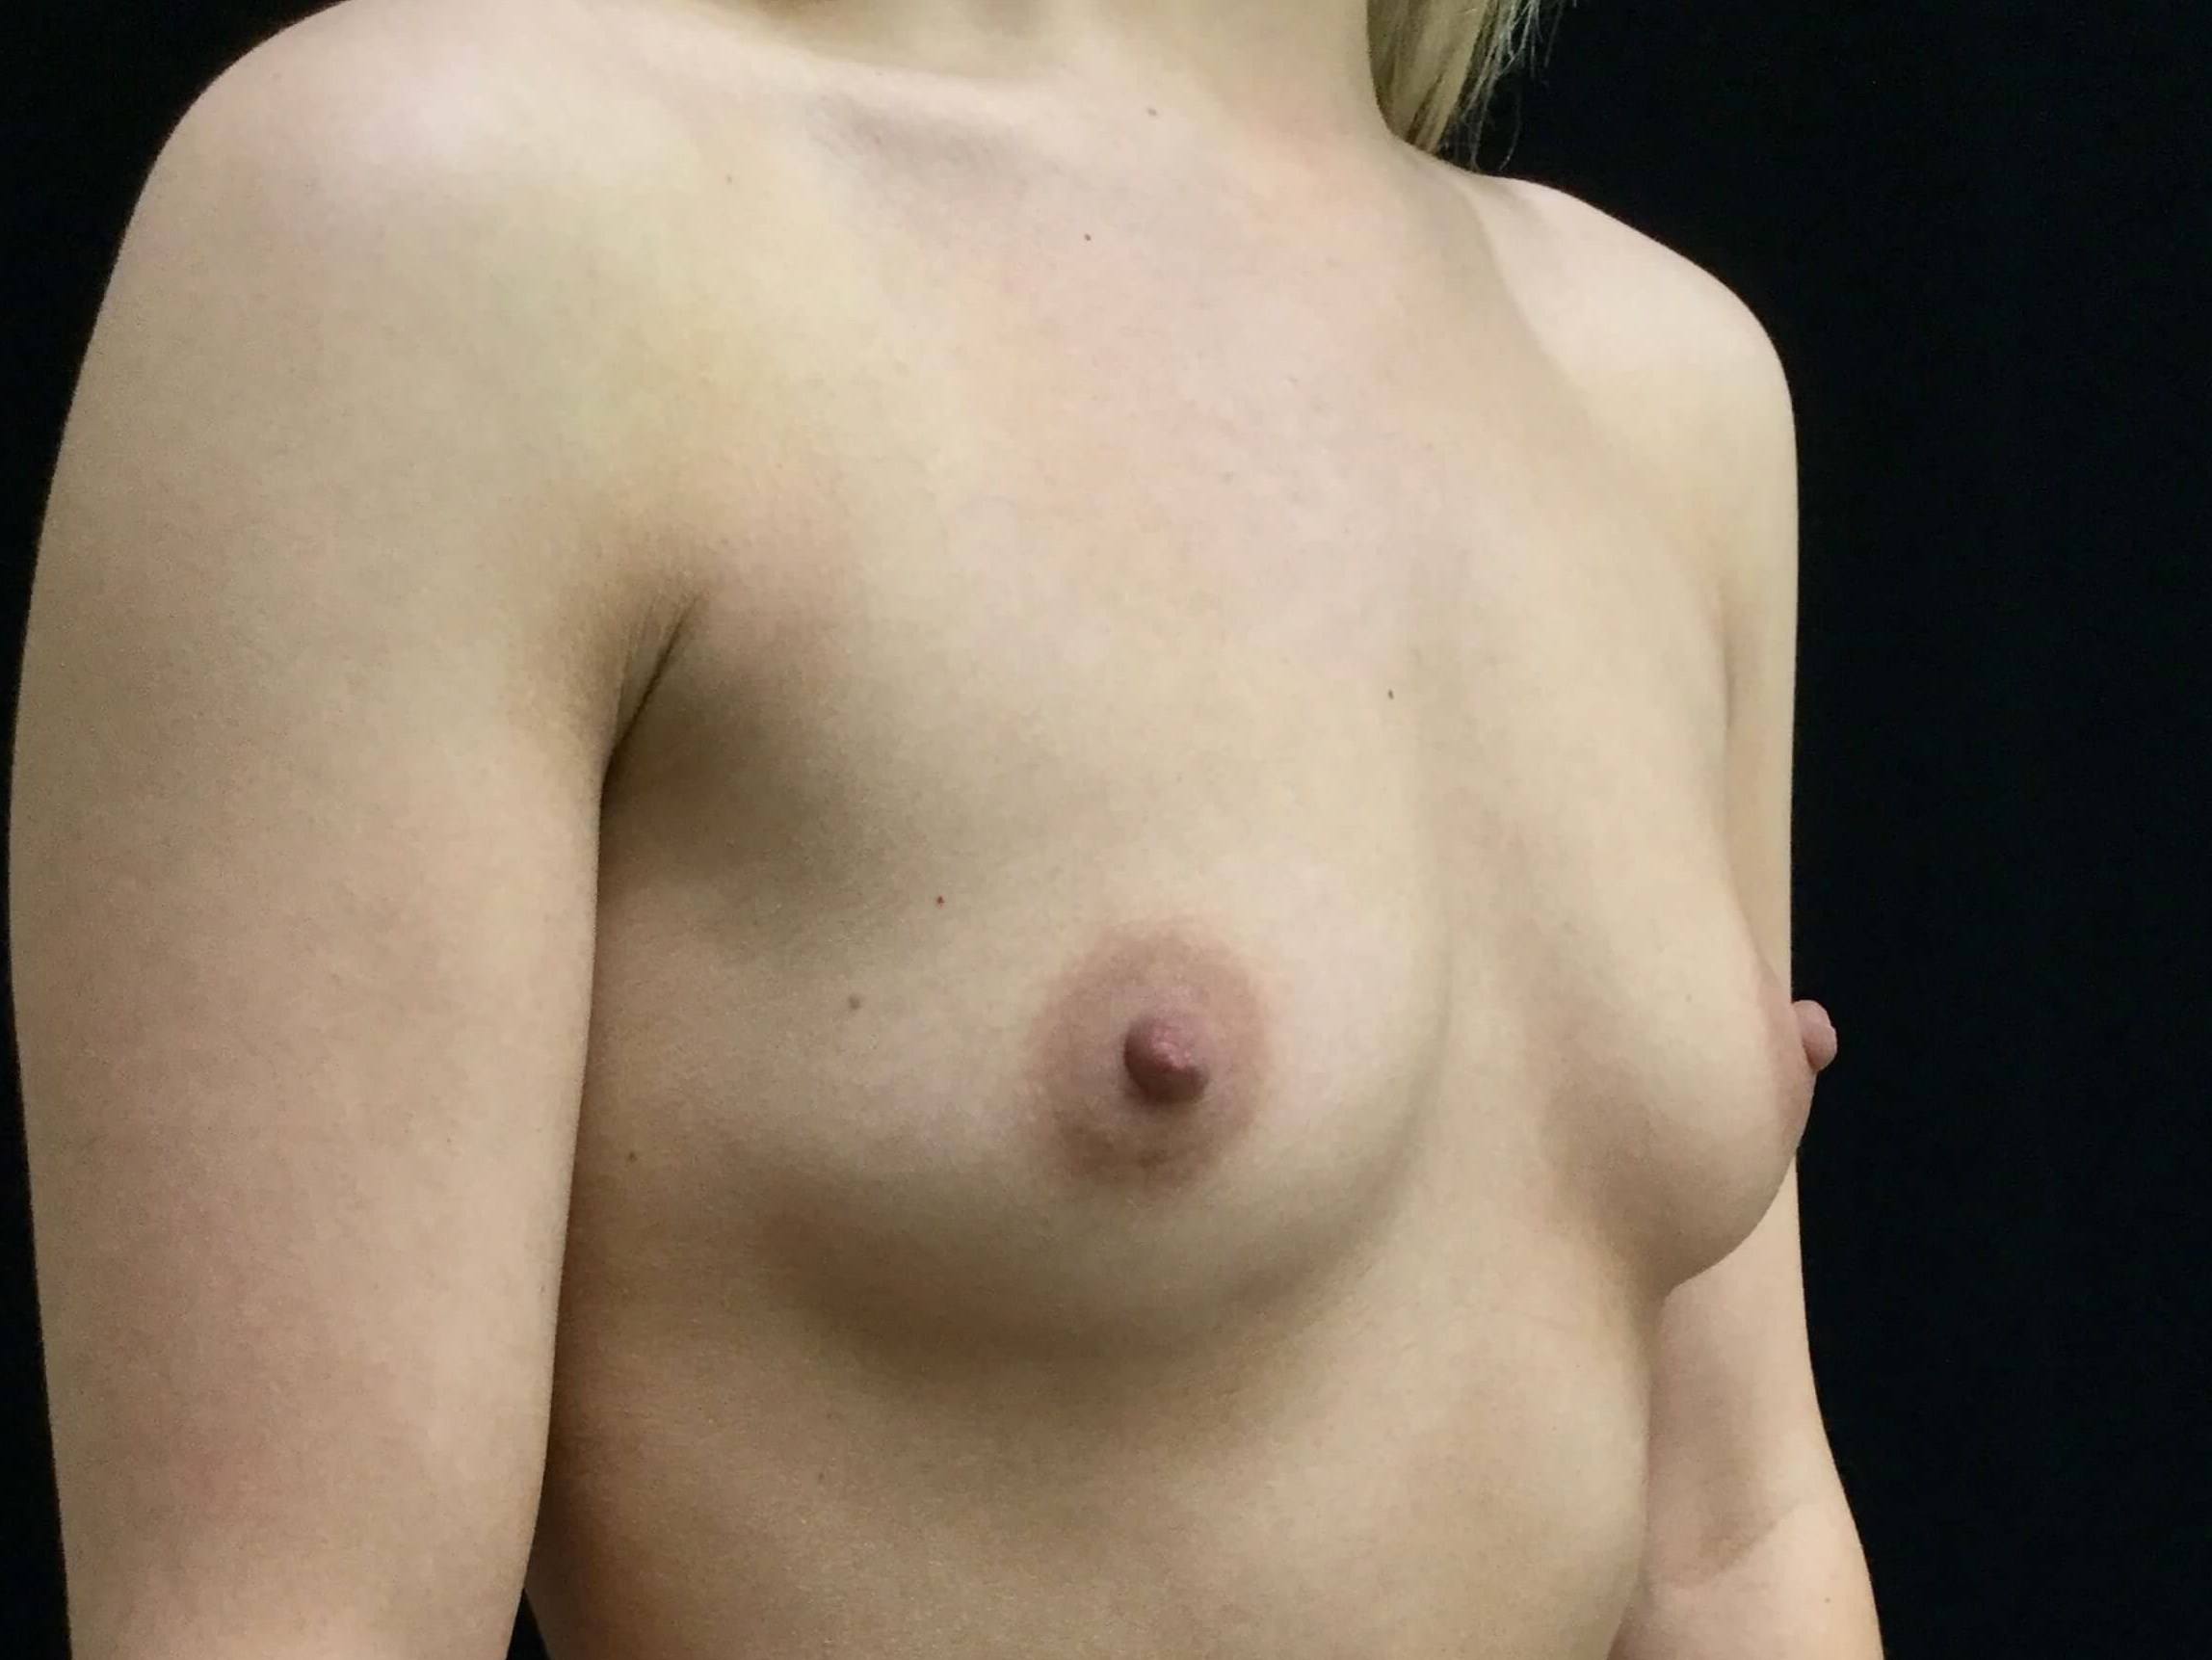 DALLAS, TEXAS WOMAN HAS GUMMY BEAR BREAST AUGMENTATION